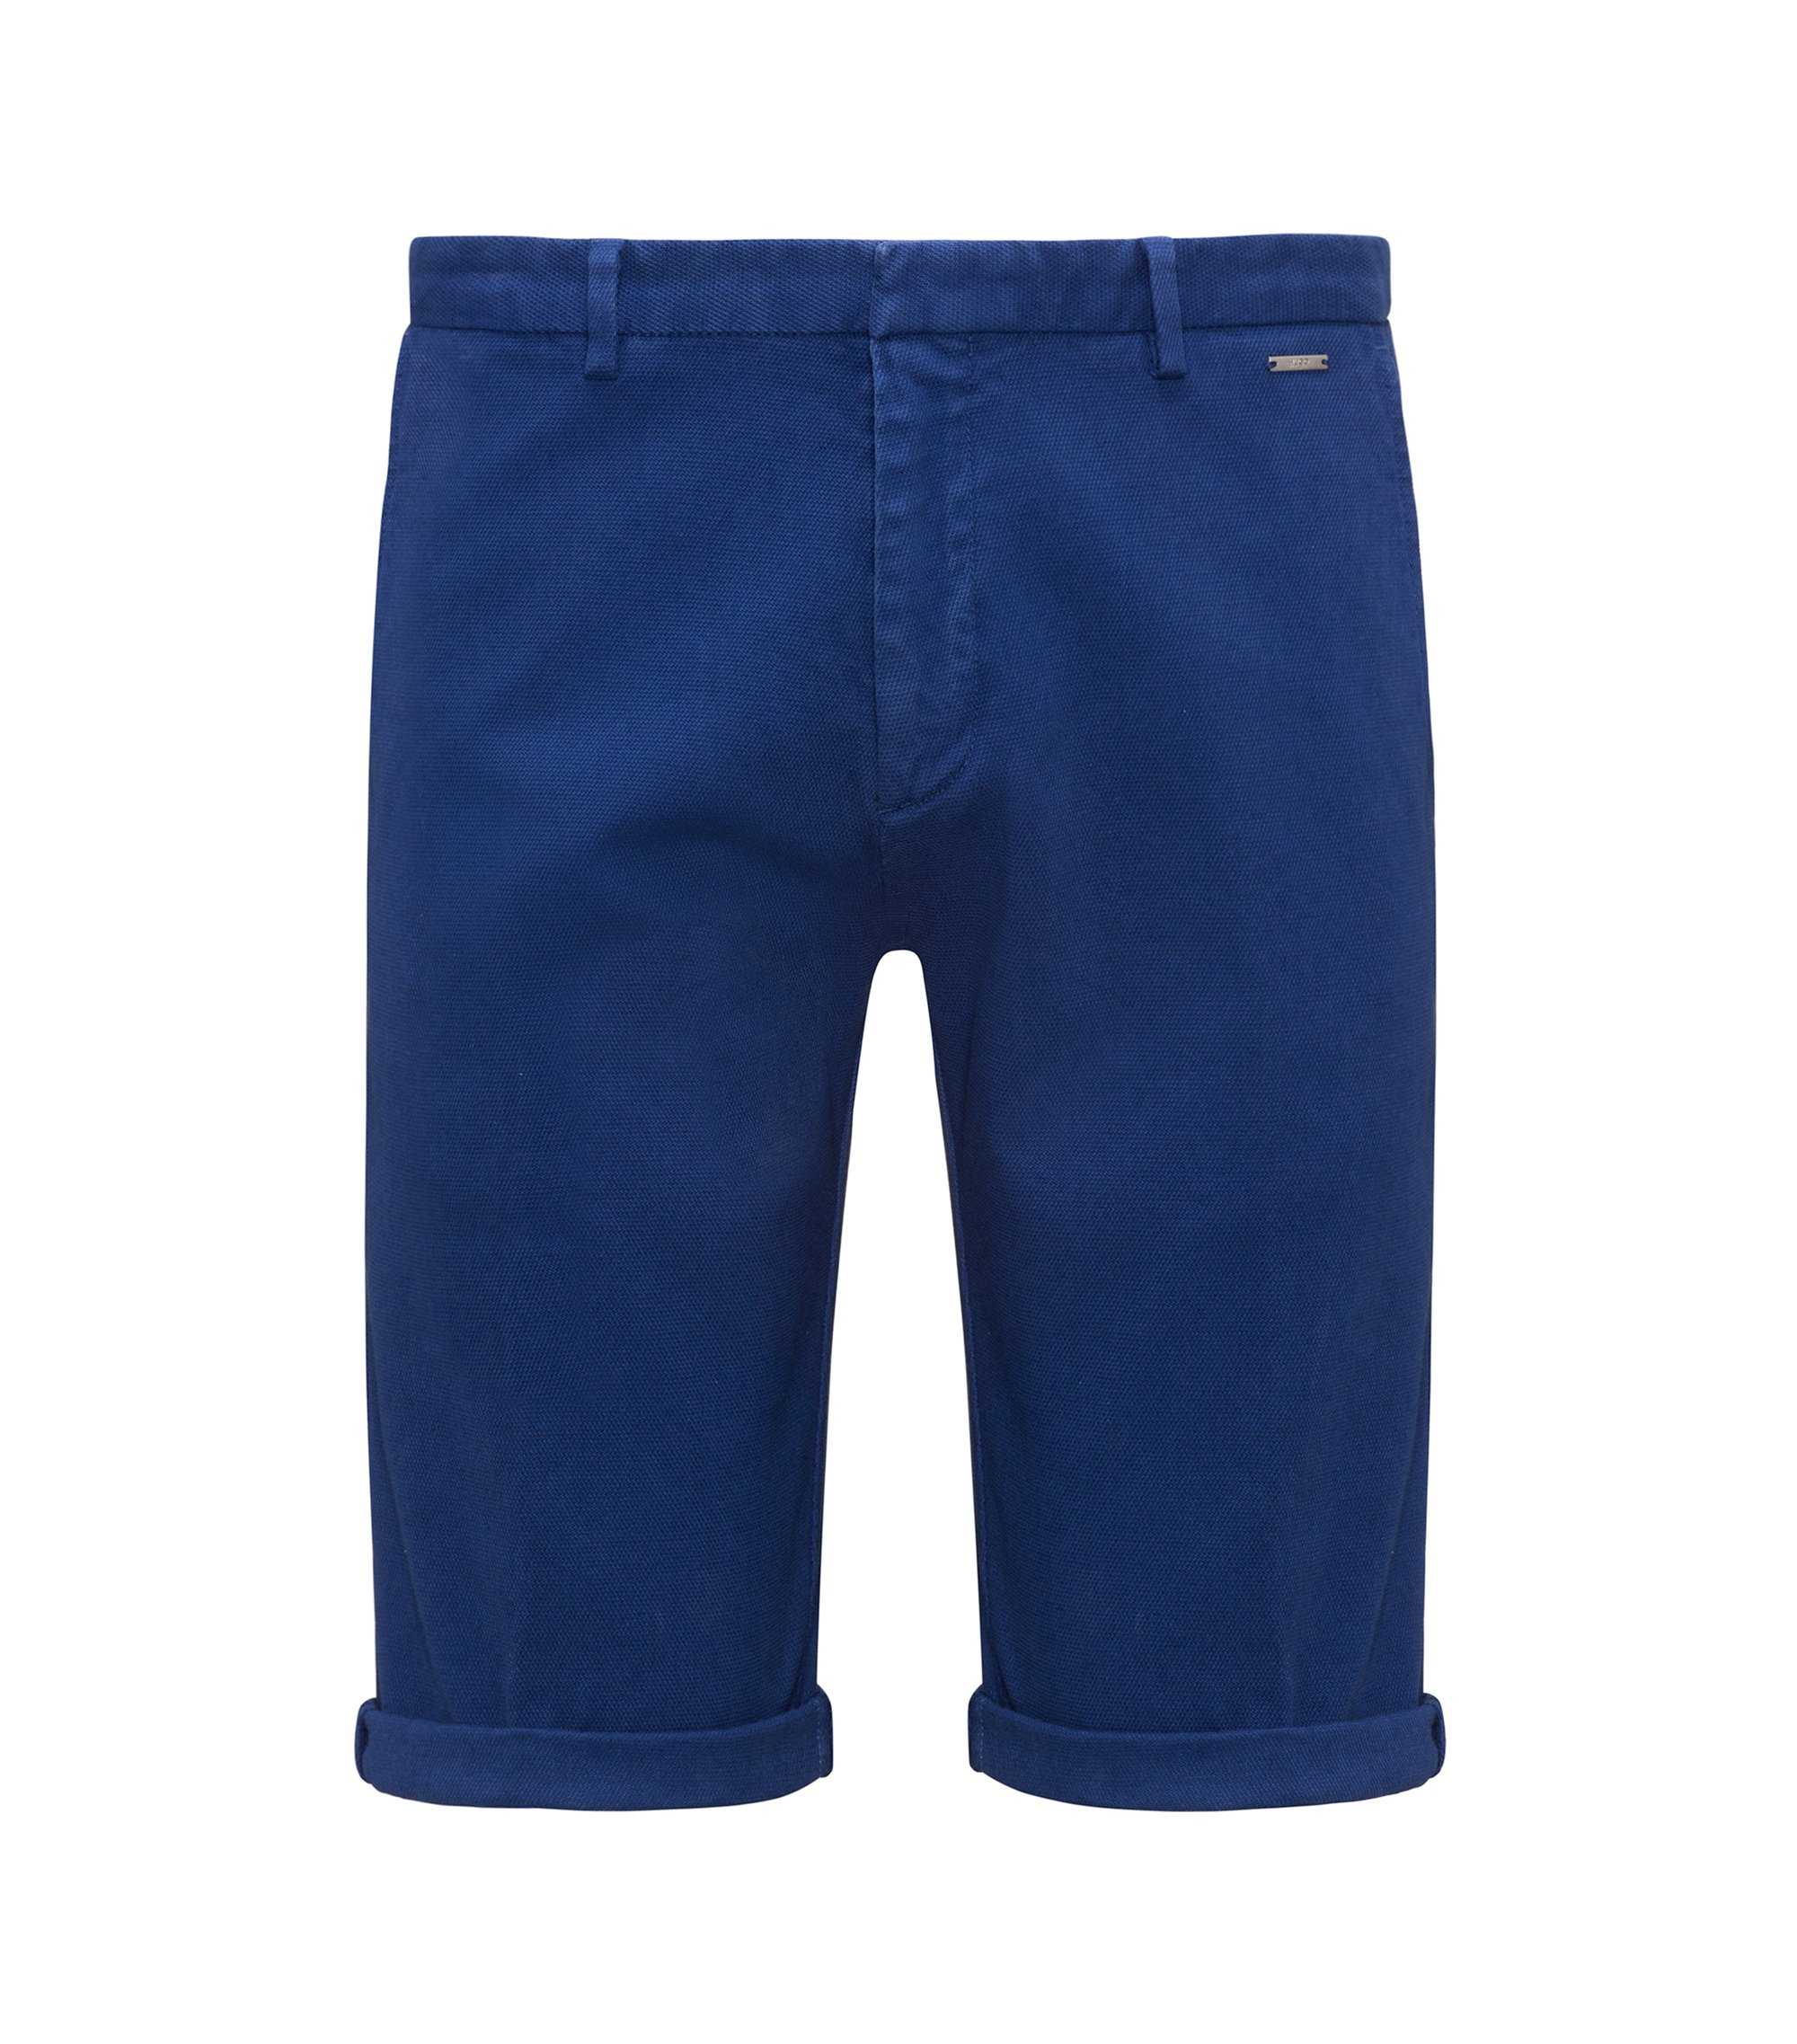 Short Slim Fit en coton stretch à la structure mesh, Bleu foncé